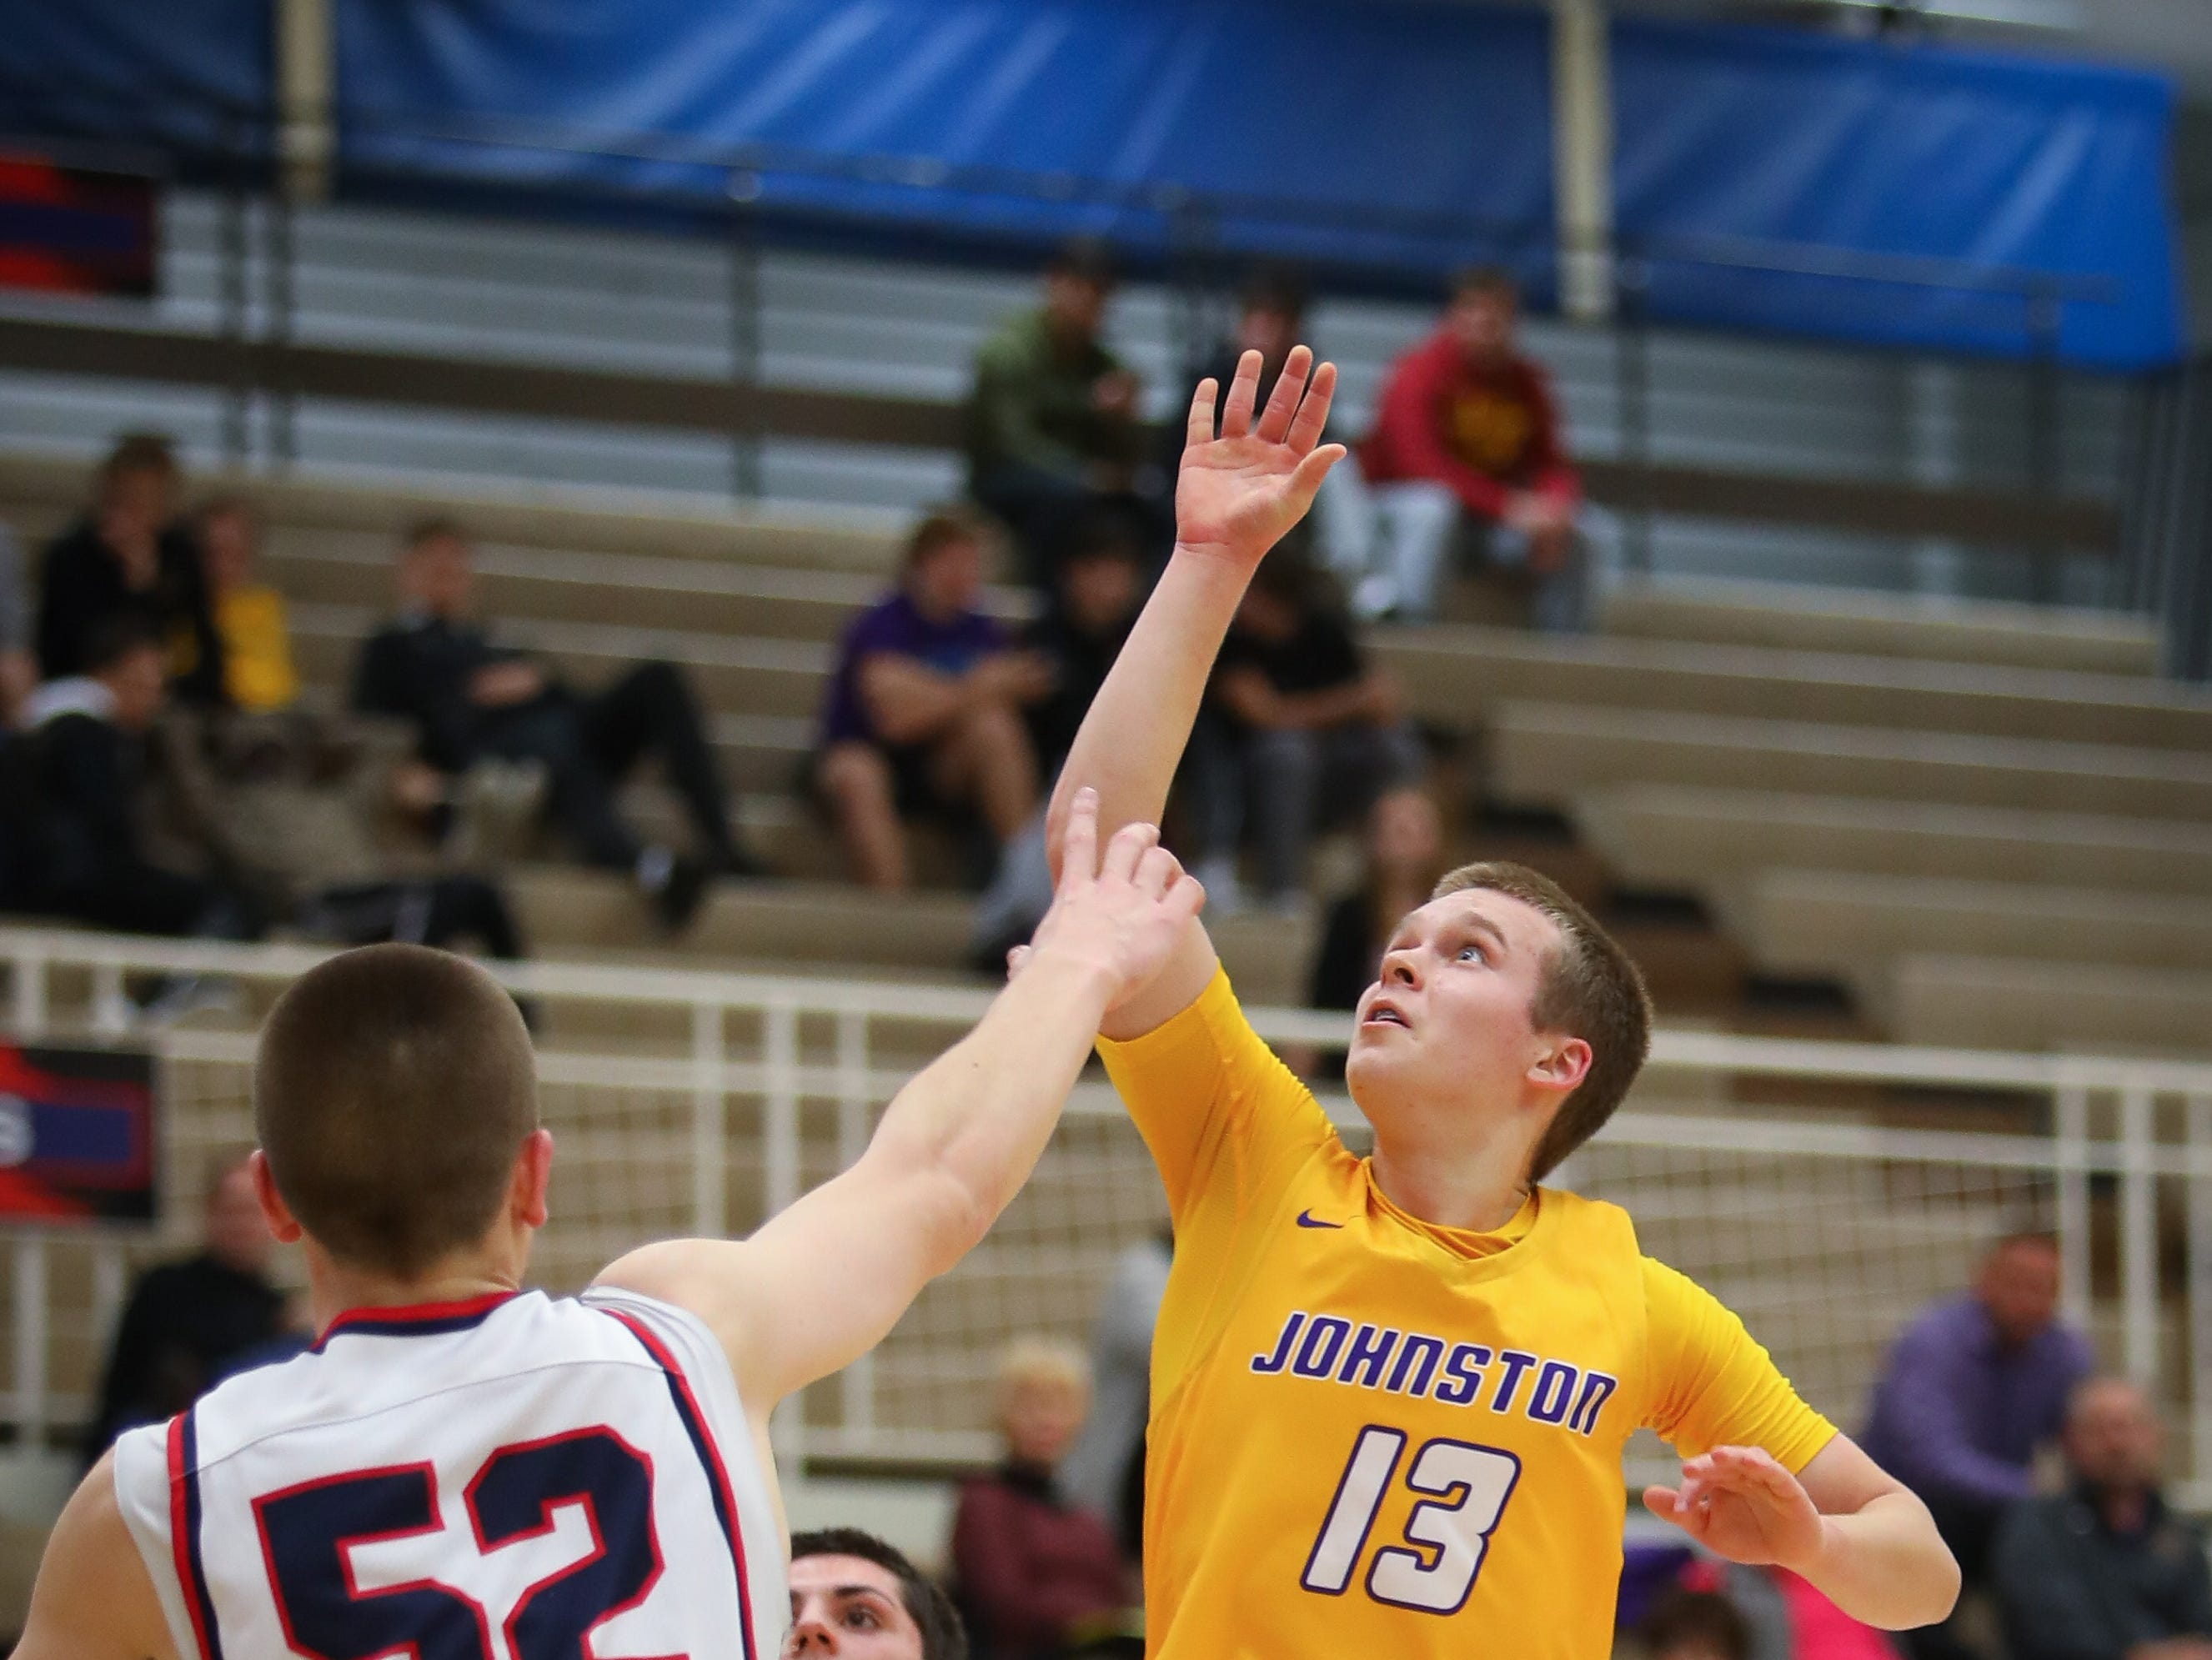 Johnston freshman Jacob Runyan floats one in during a boys high school basketball game between the Johnston Dragons and the Urbandale J-Hawks at Urbandale High School on Dec. 18, 2018 in Urbandale, Iowa.